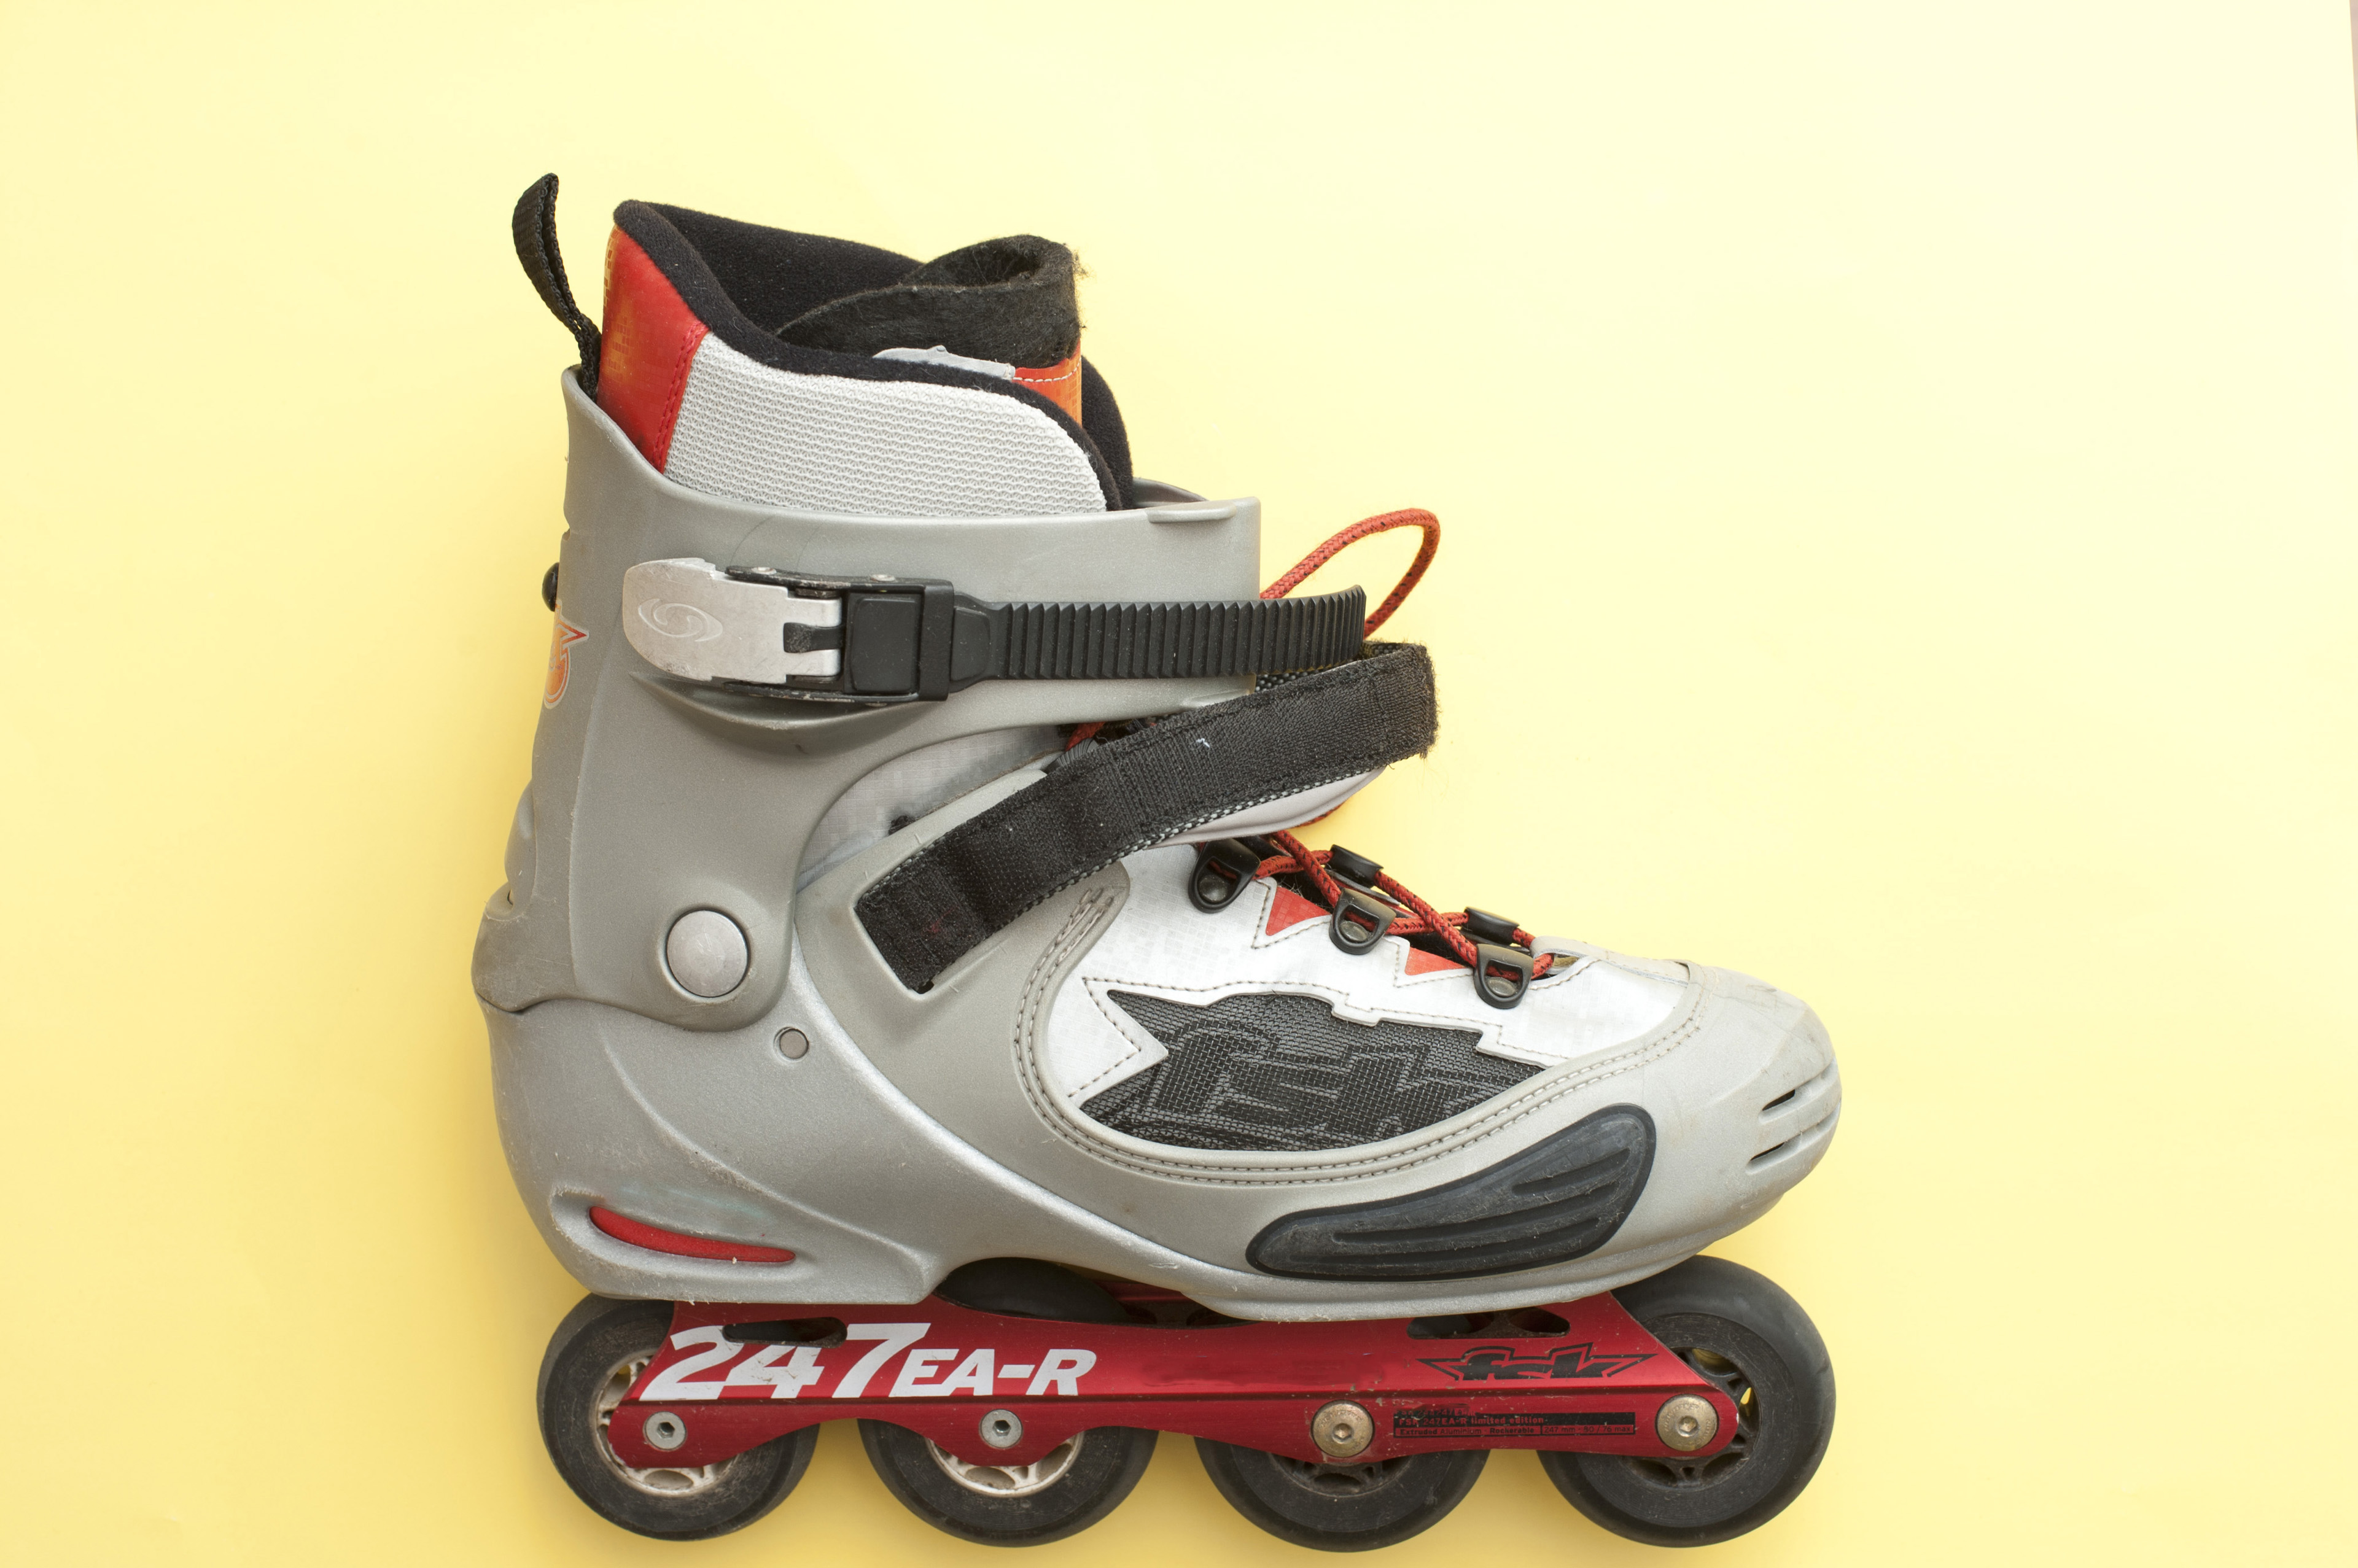 Modern inline roller skate or roller blade with four wheels aligned in a row on a yellow background with copyspace